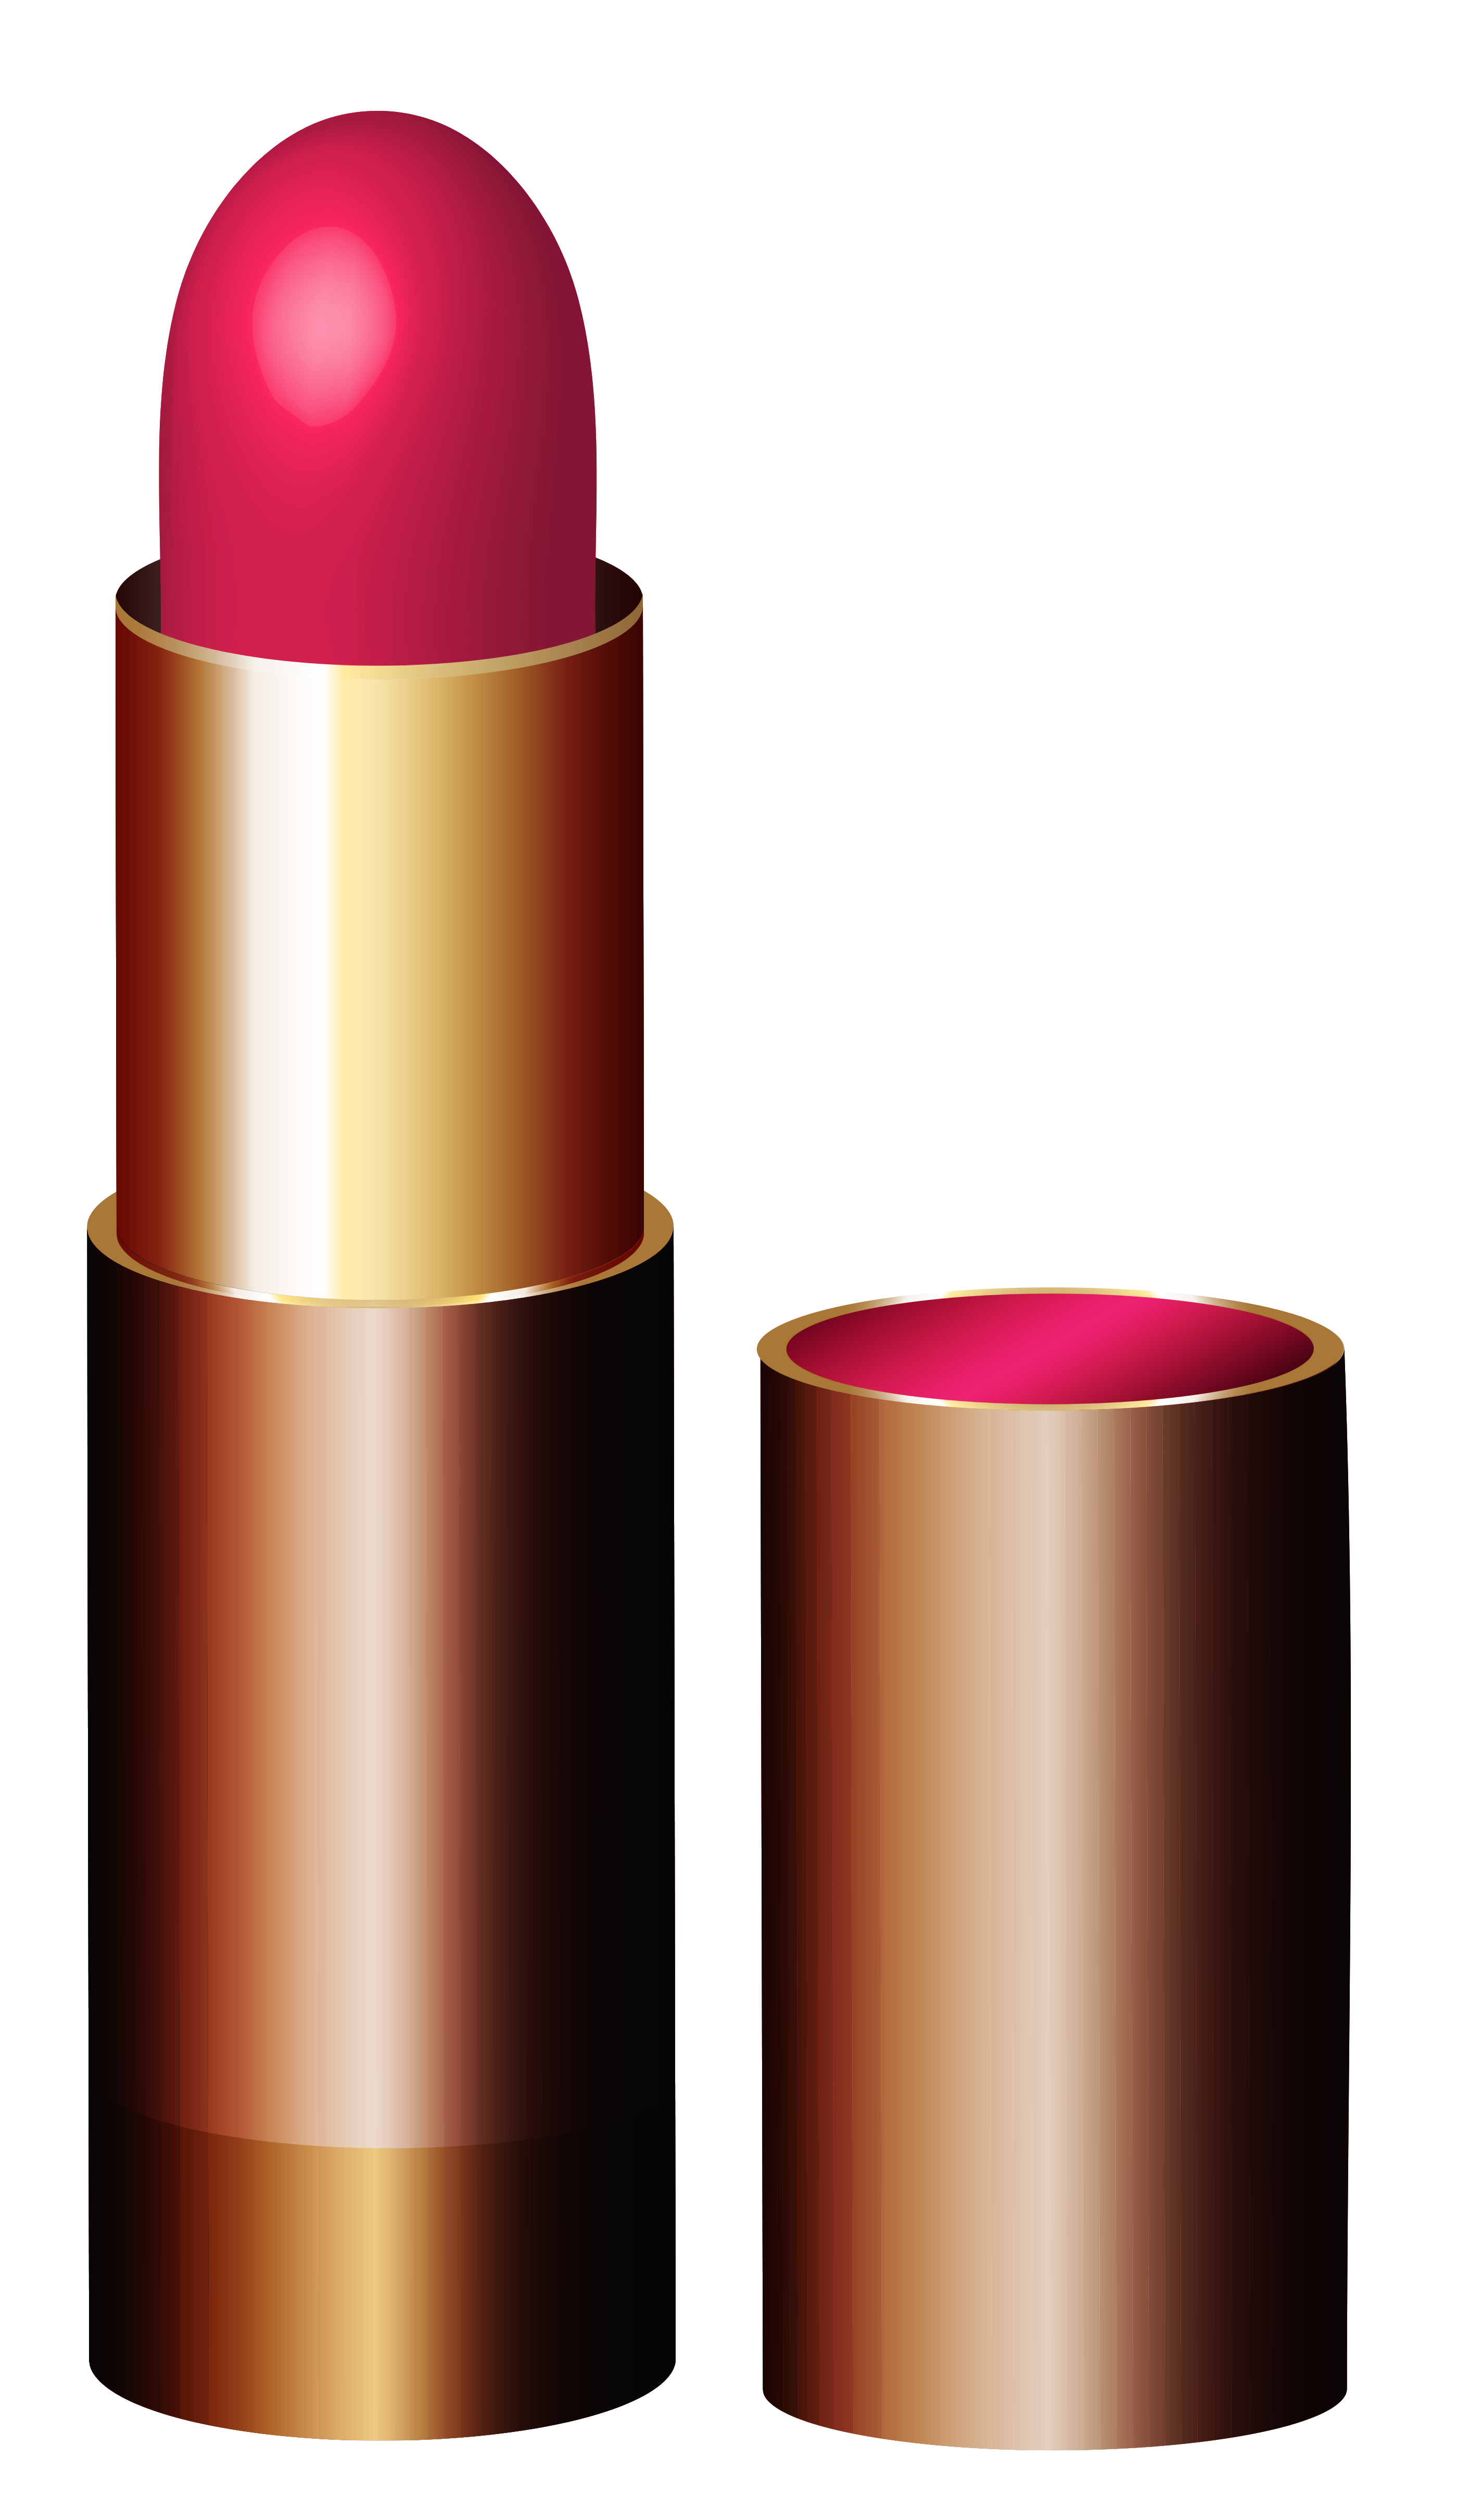 Png gallery yopriceville high. Lipstick clipart pink lipstick